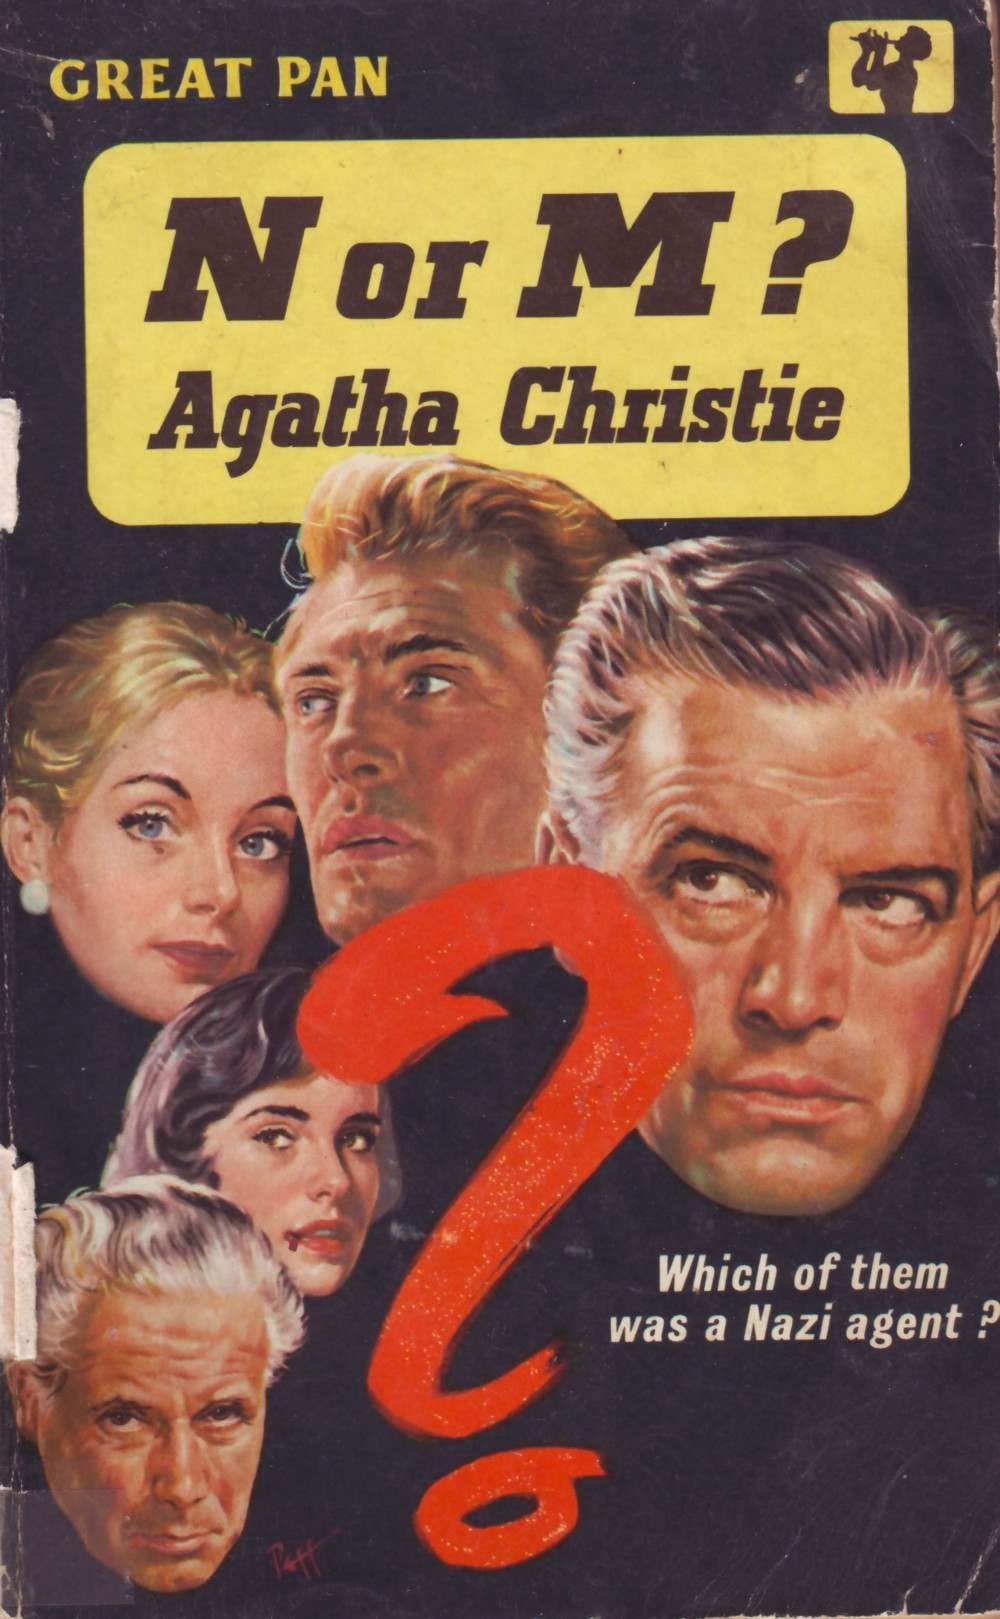 N or M? was first published in 1941 with the Pan edition in 1959.